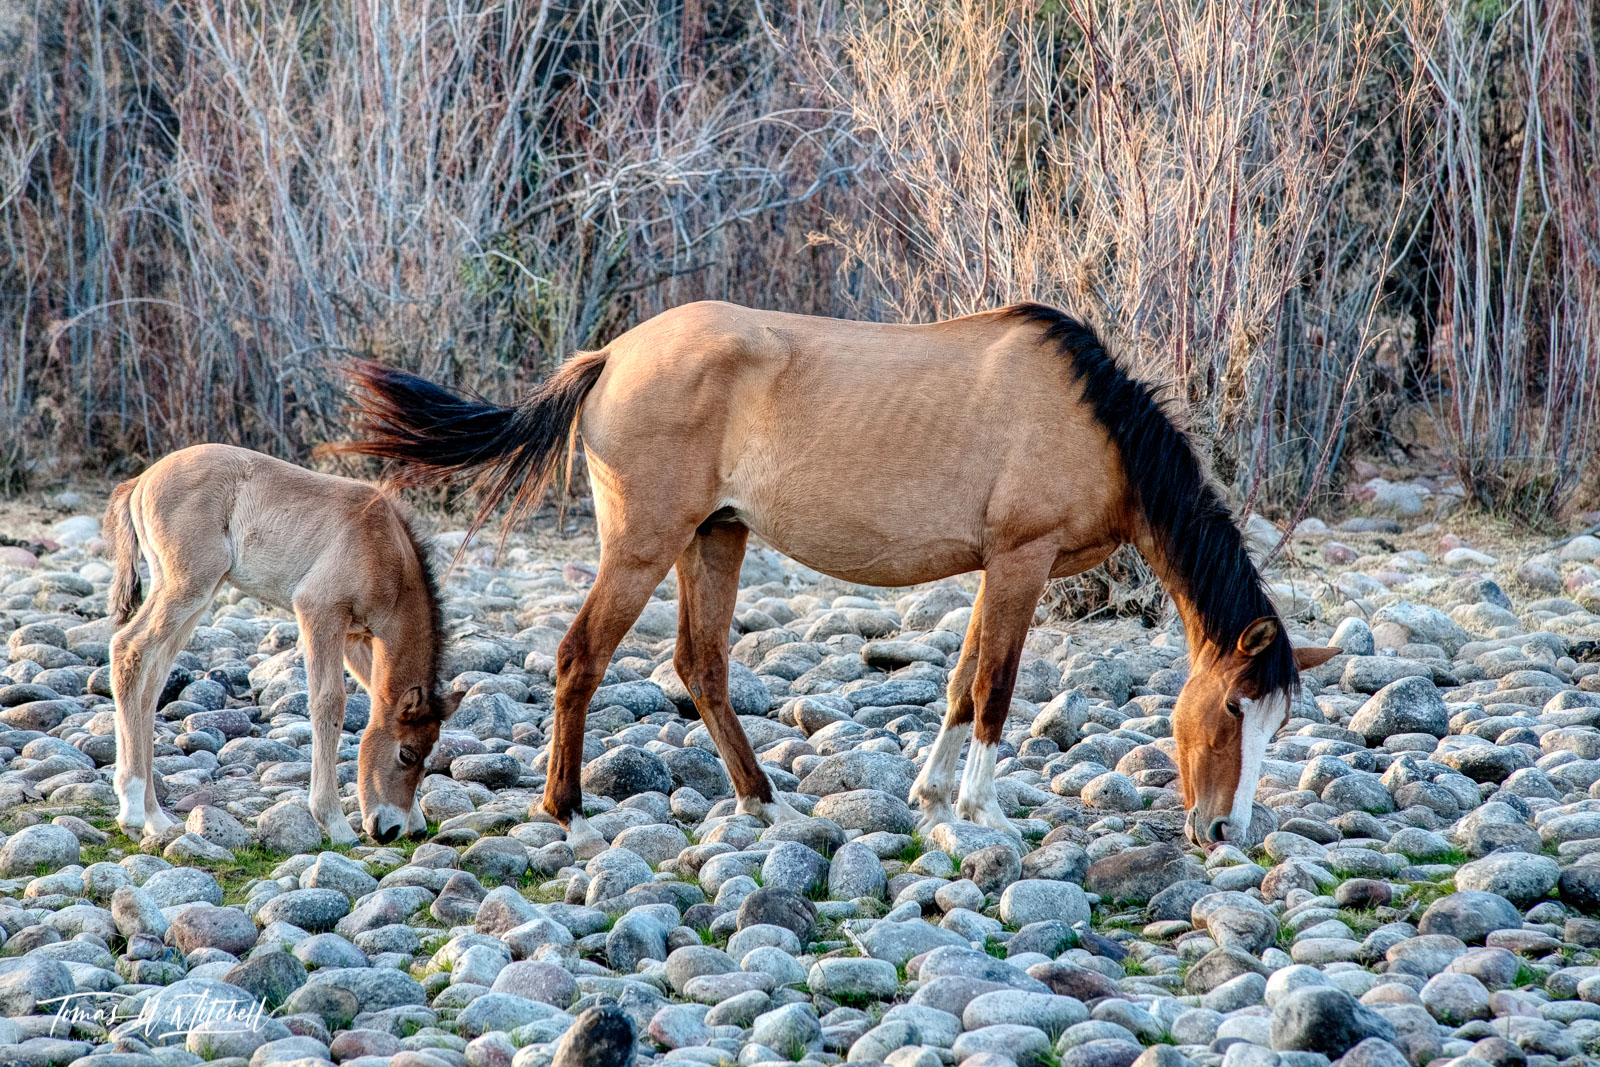 limited edition, fine art, prints, salt river, arizona, horses, mare, foal, photographing, photo